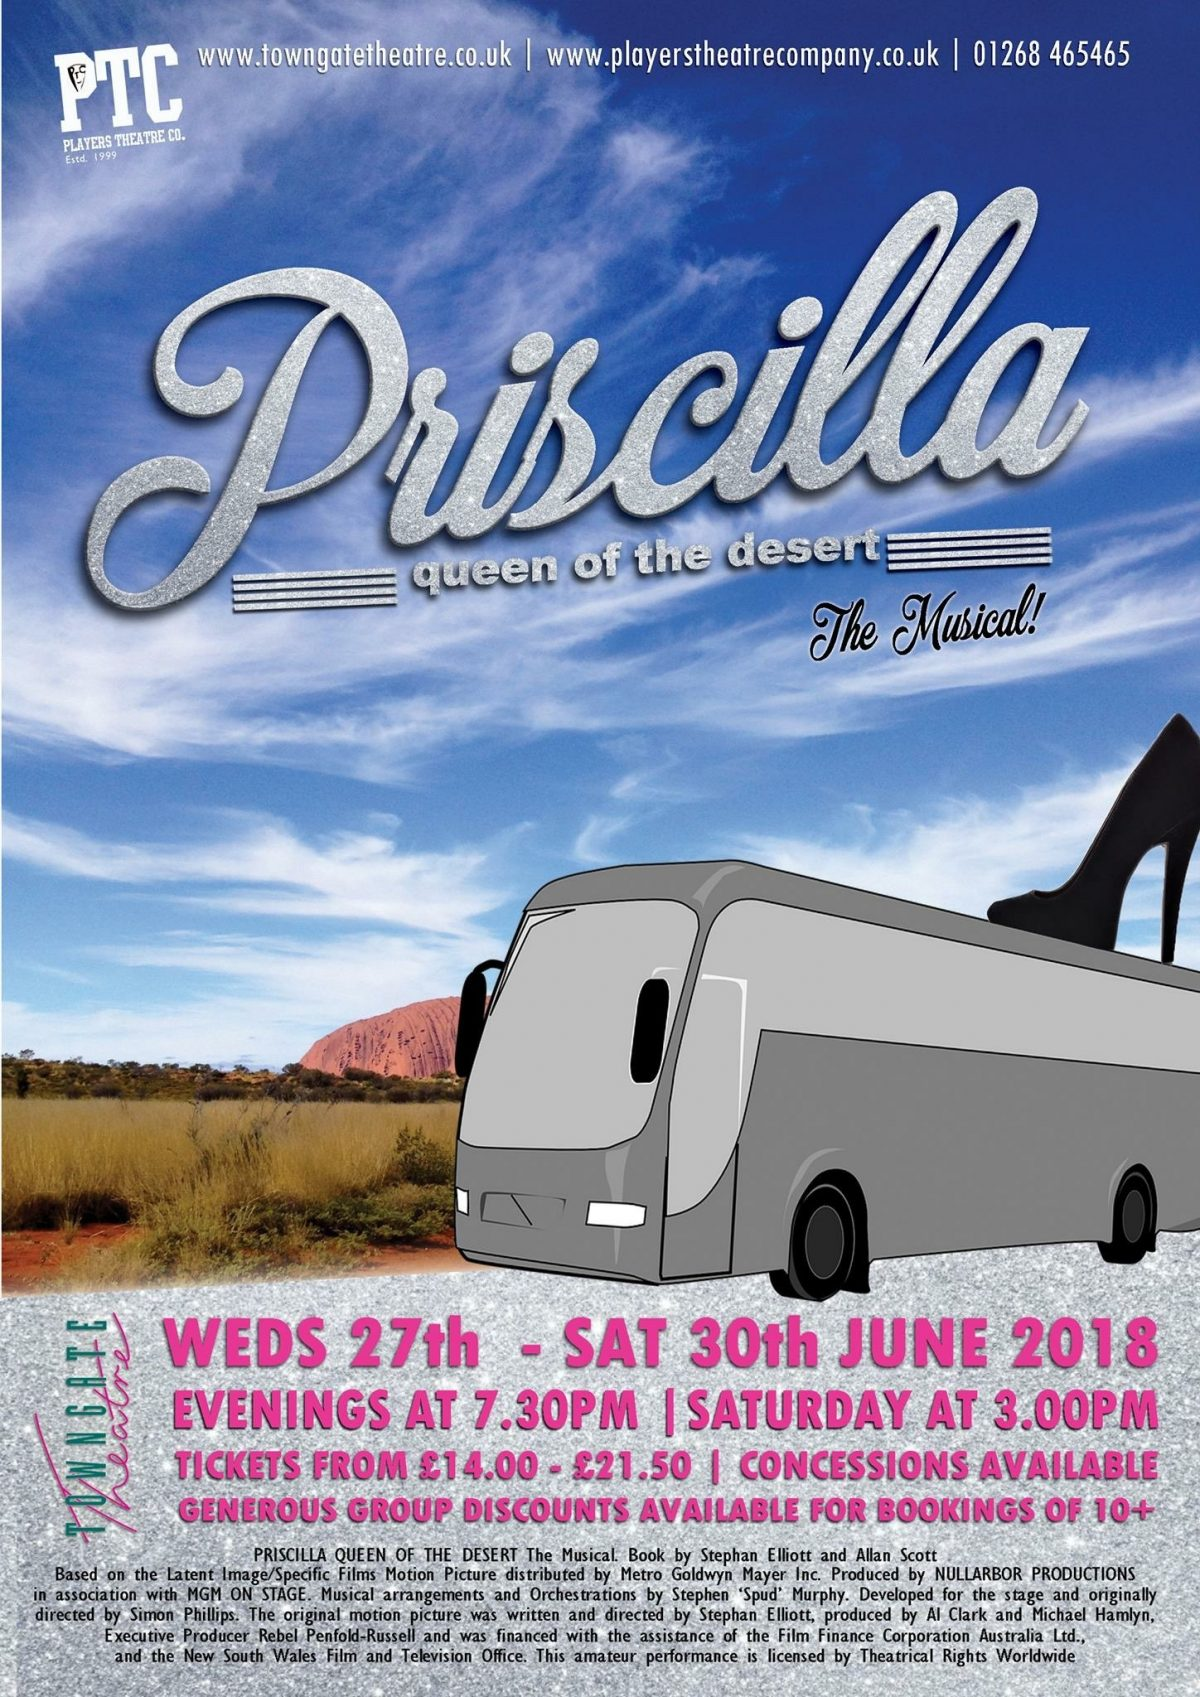 Priscilla Queen of the Desert The Musical heads to The Towngate Theatre, Basildon. Philip Rogers attended a recent dress rehearsal and got a chance to speak with some of the cast about what we can expect from the new production.